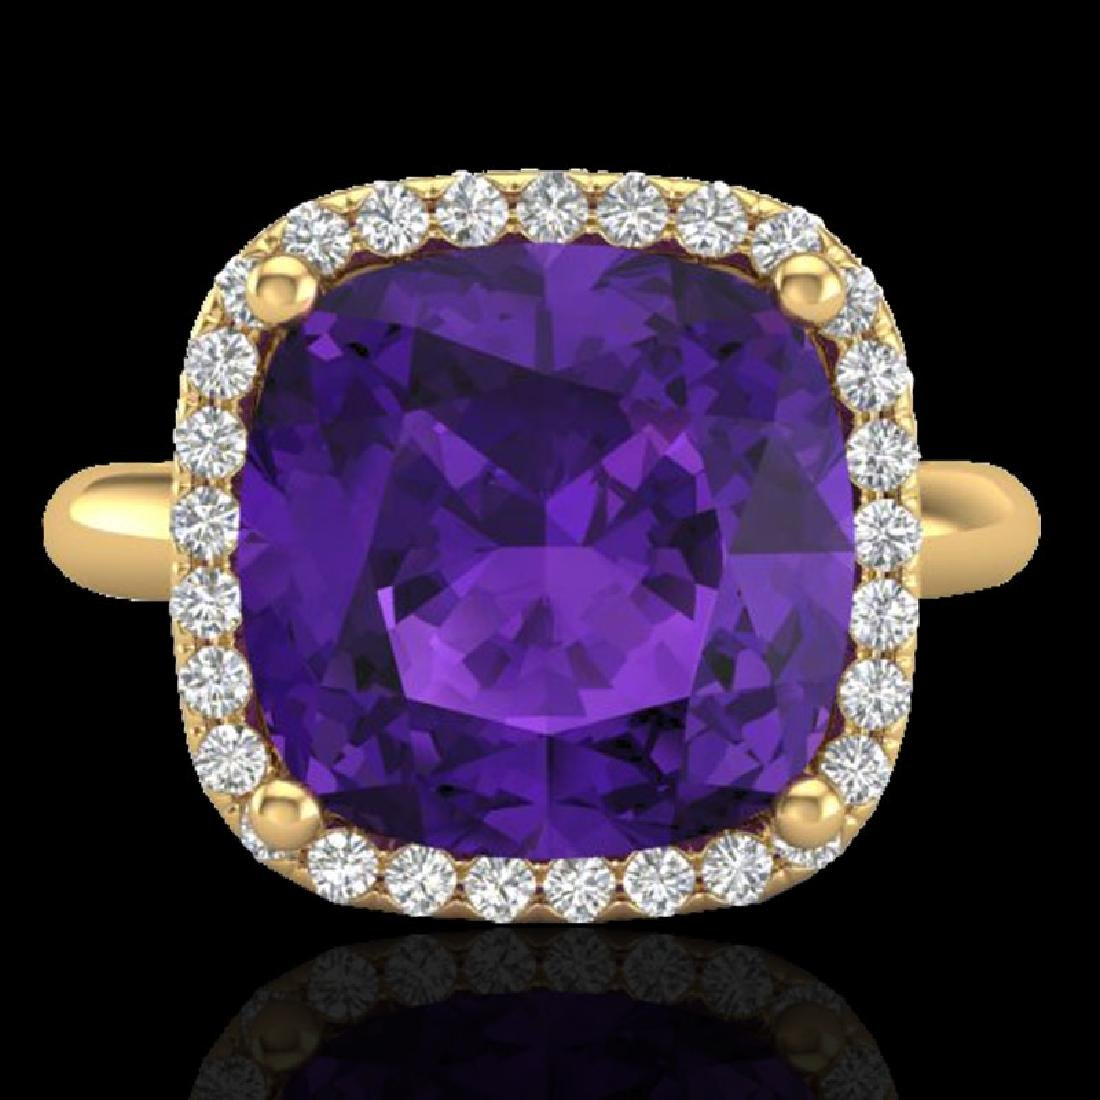 6 CTW Amethyst & Micro Pave Halo VS/SI Diamond Ring